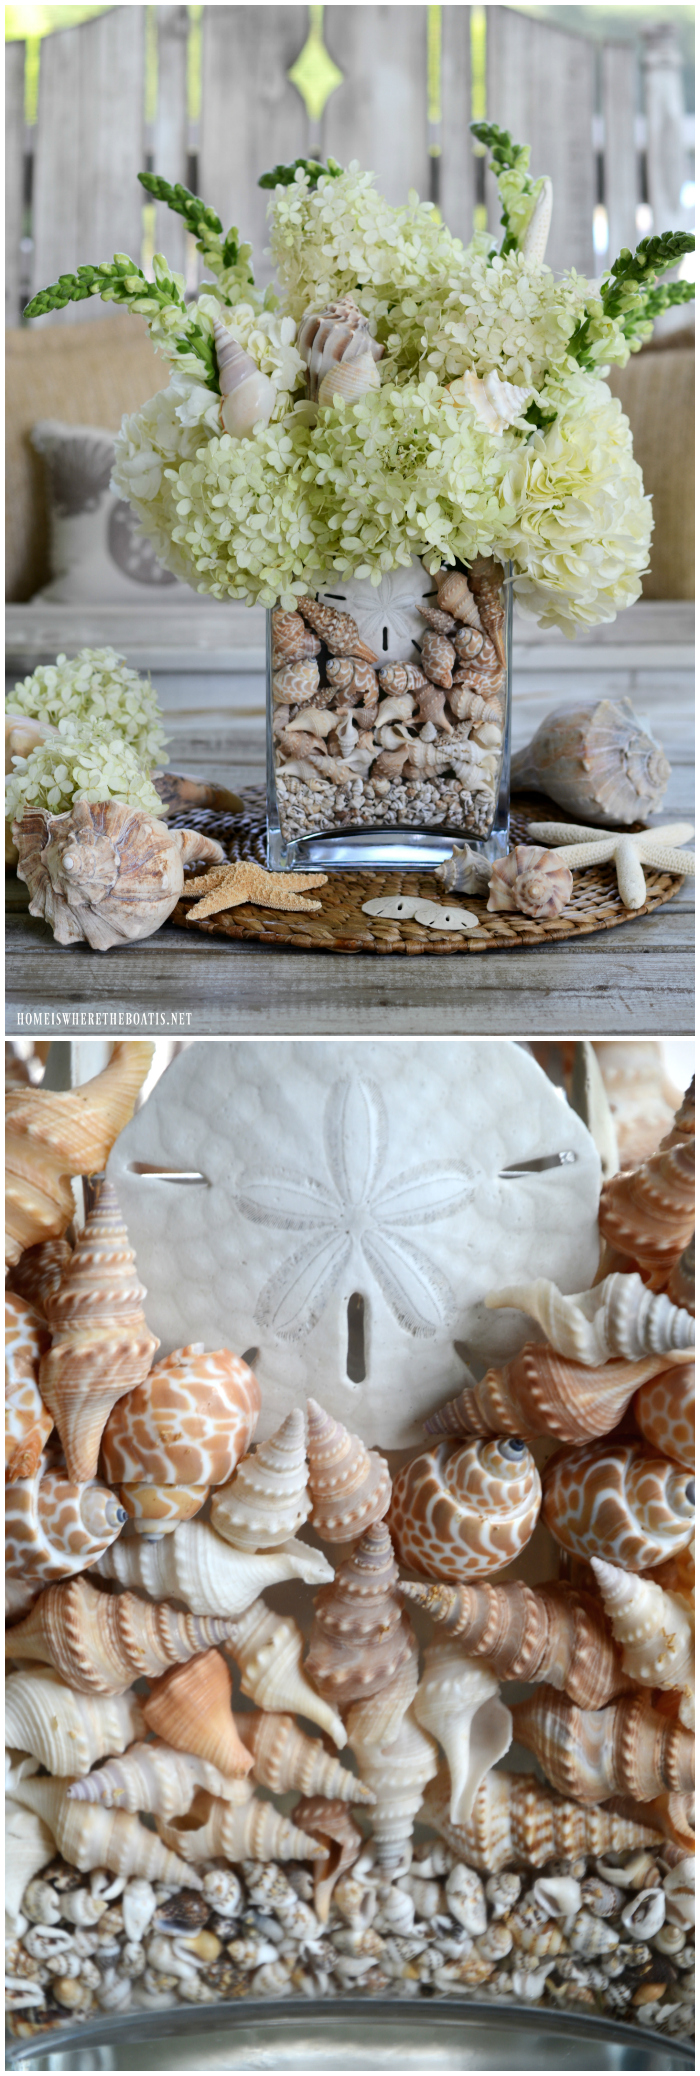 Create a flower arrangement and centerpiece for your table incorporating seashells. This easy tutorial adds some seaside charm and interest to your glass vase, in addition to a decorative way to conceal your flower stems.